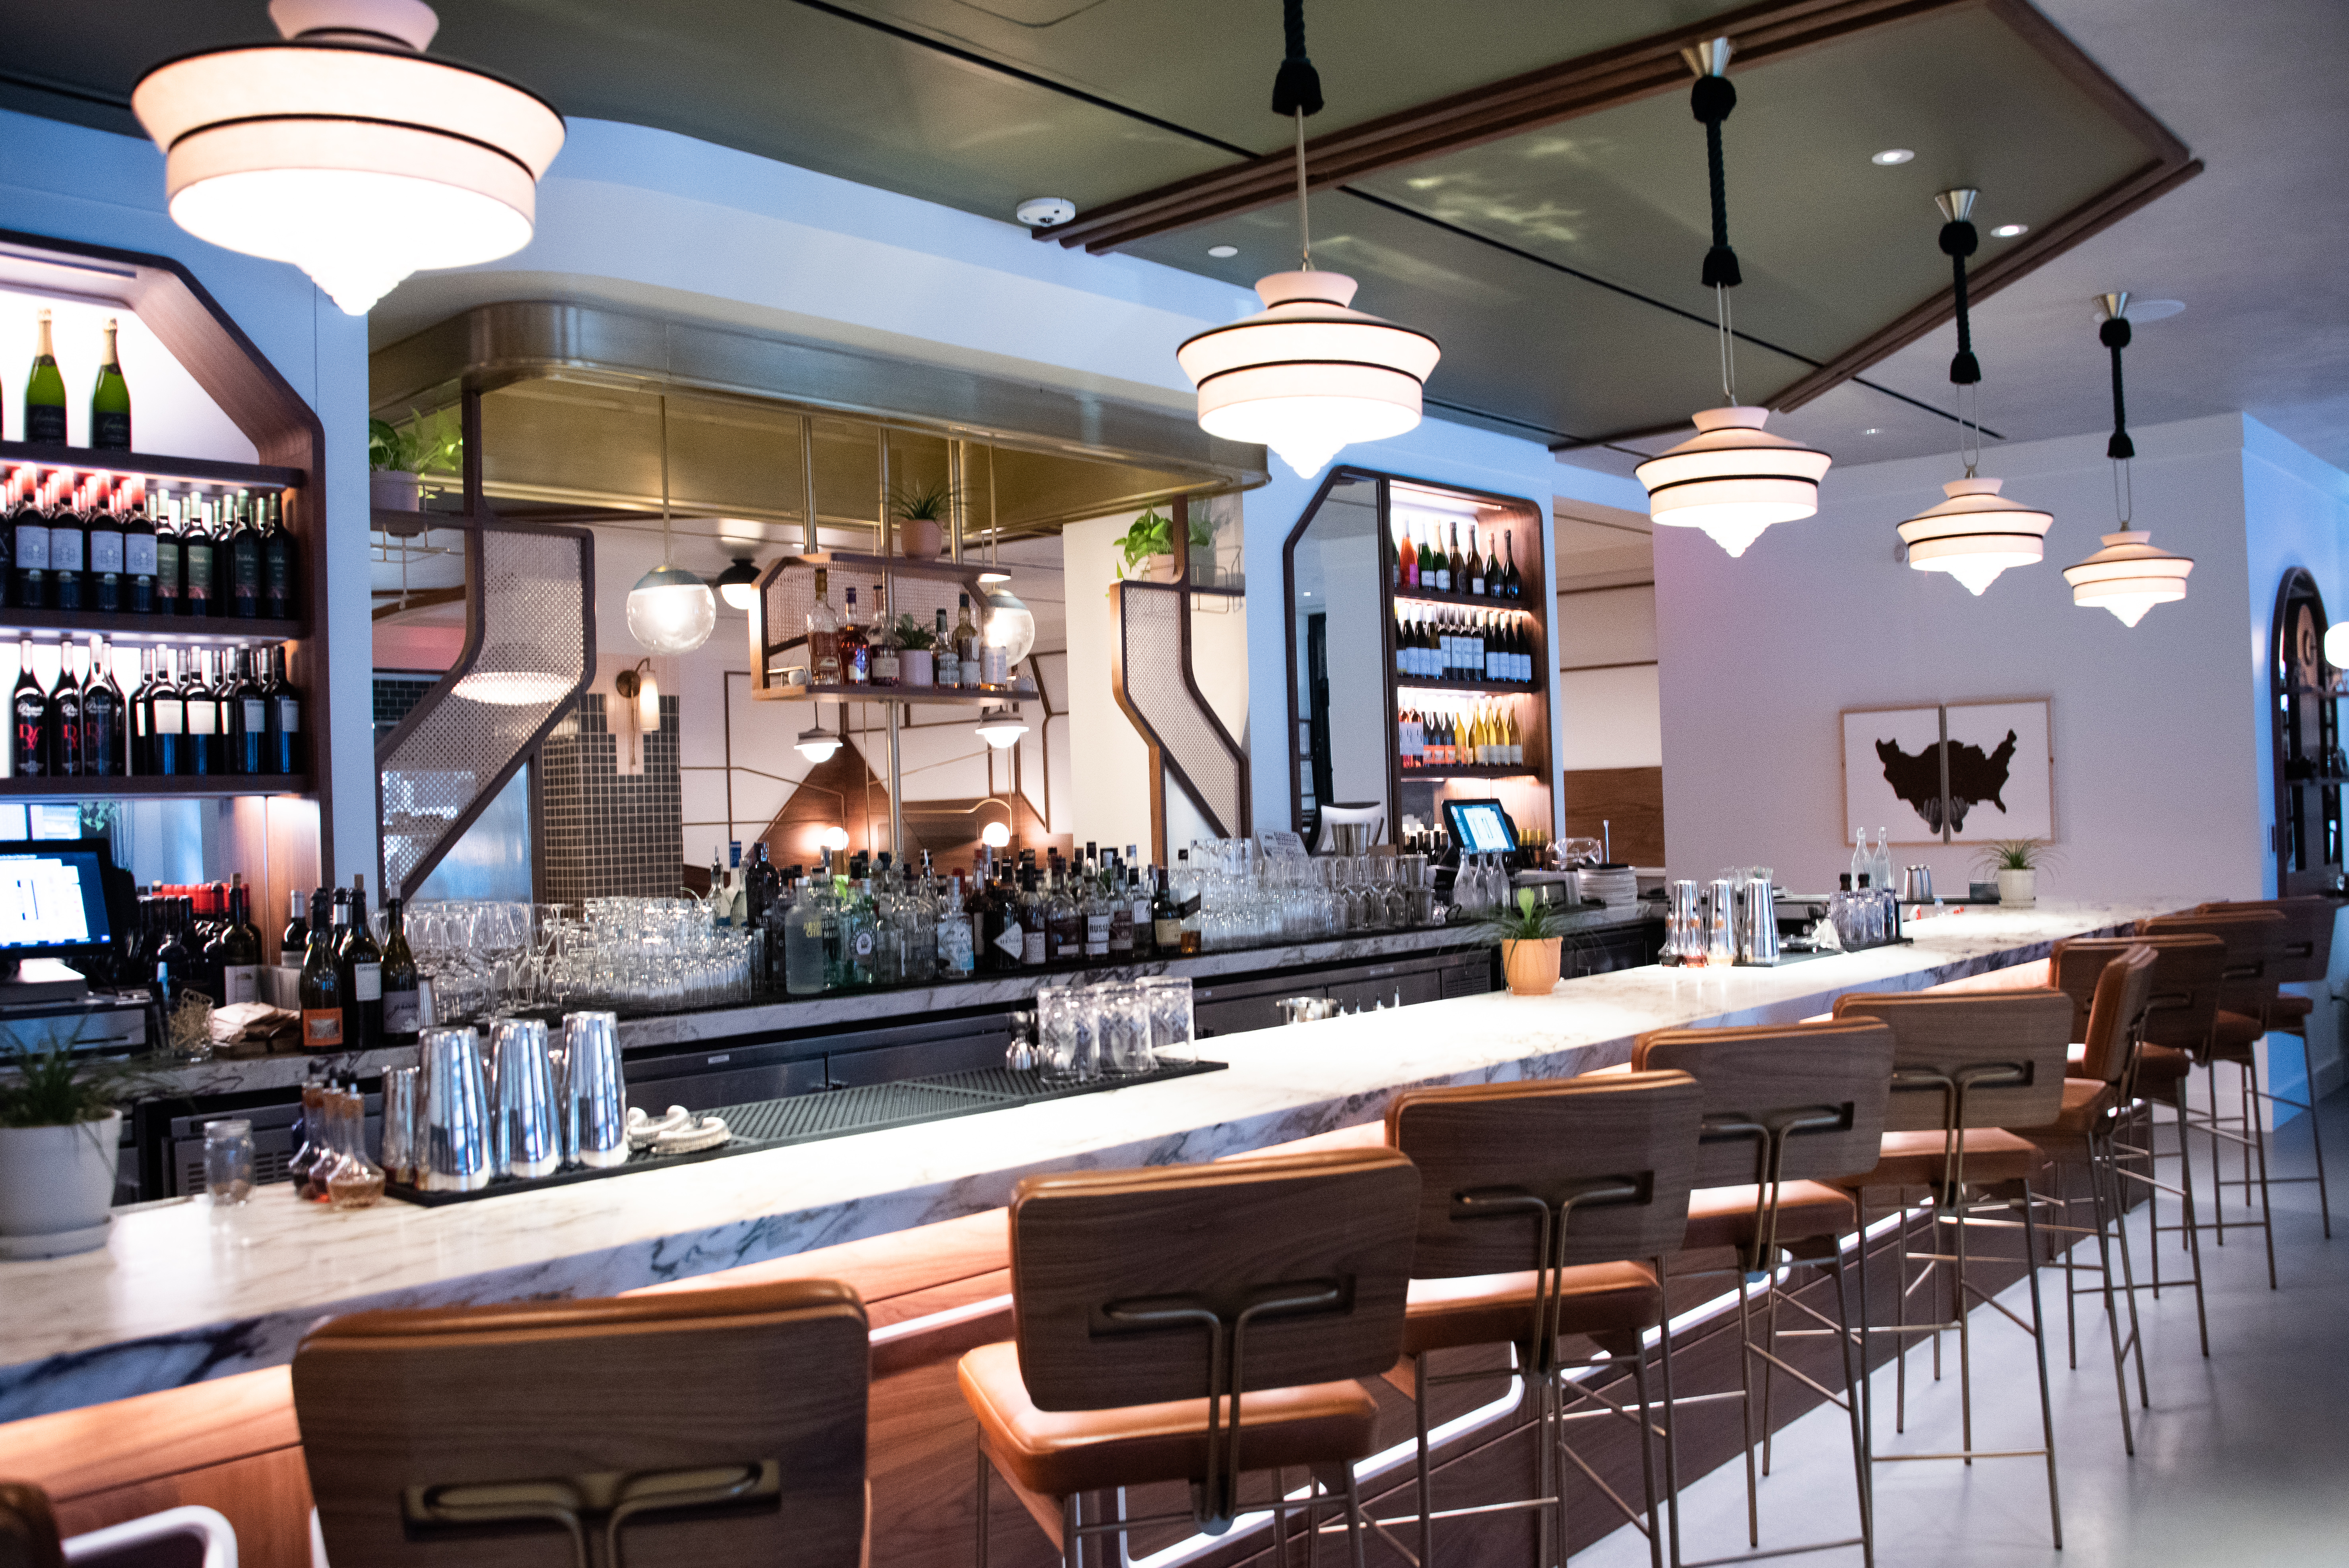 DC Dining: A Look at American Son at Eaton DC | The Dining Traveler